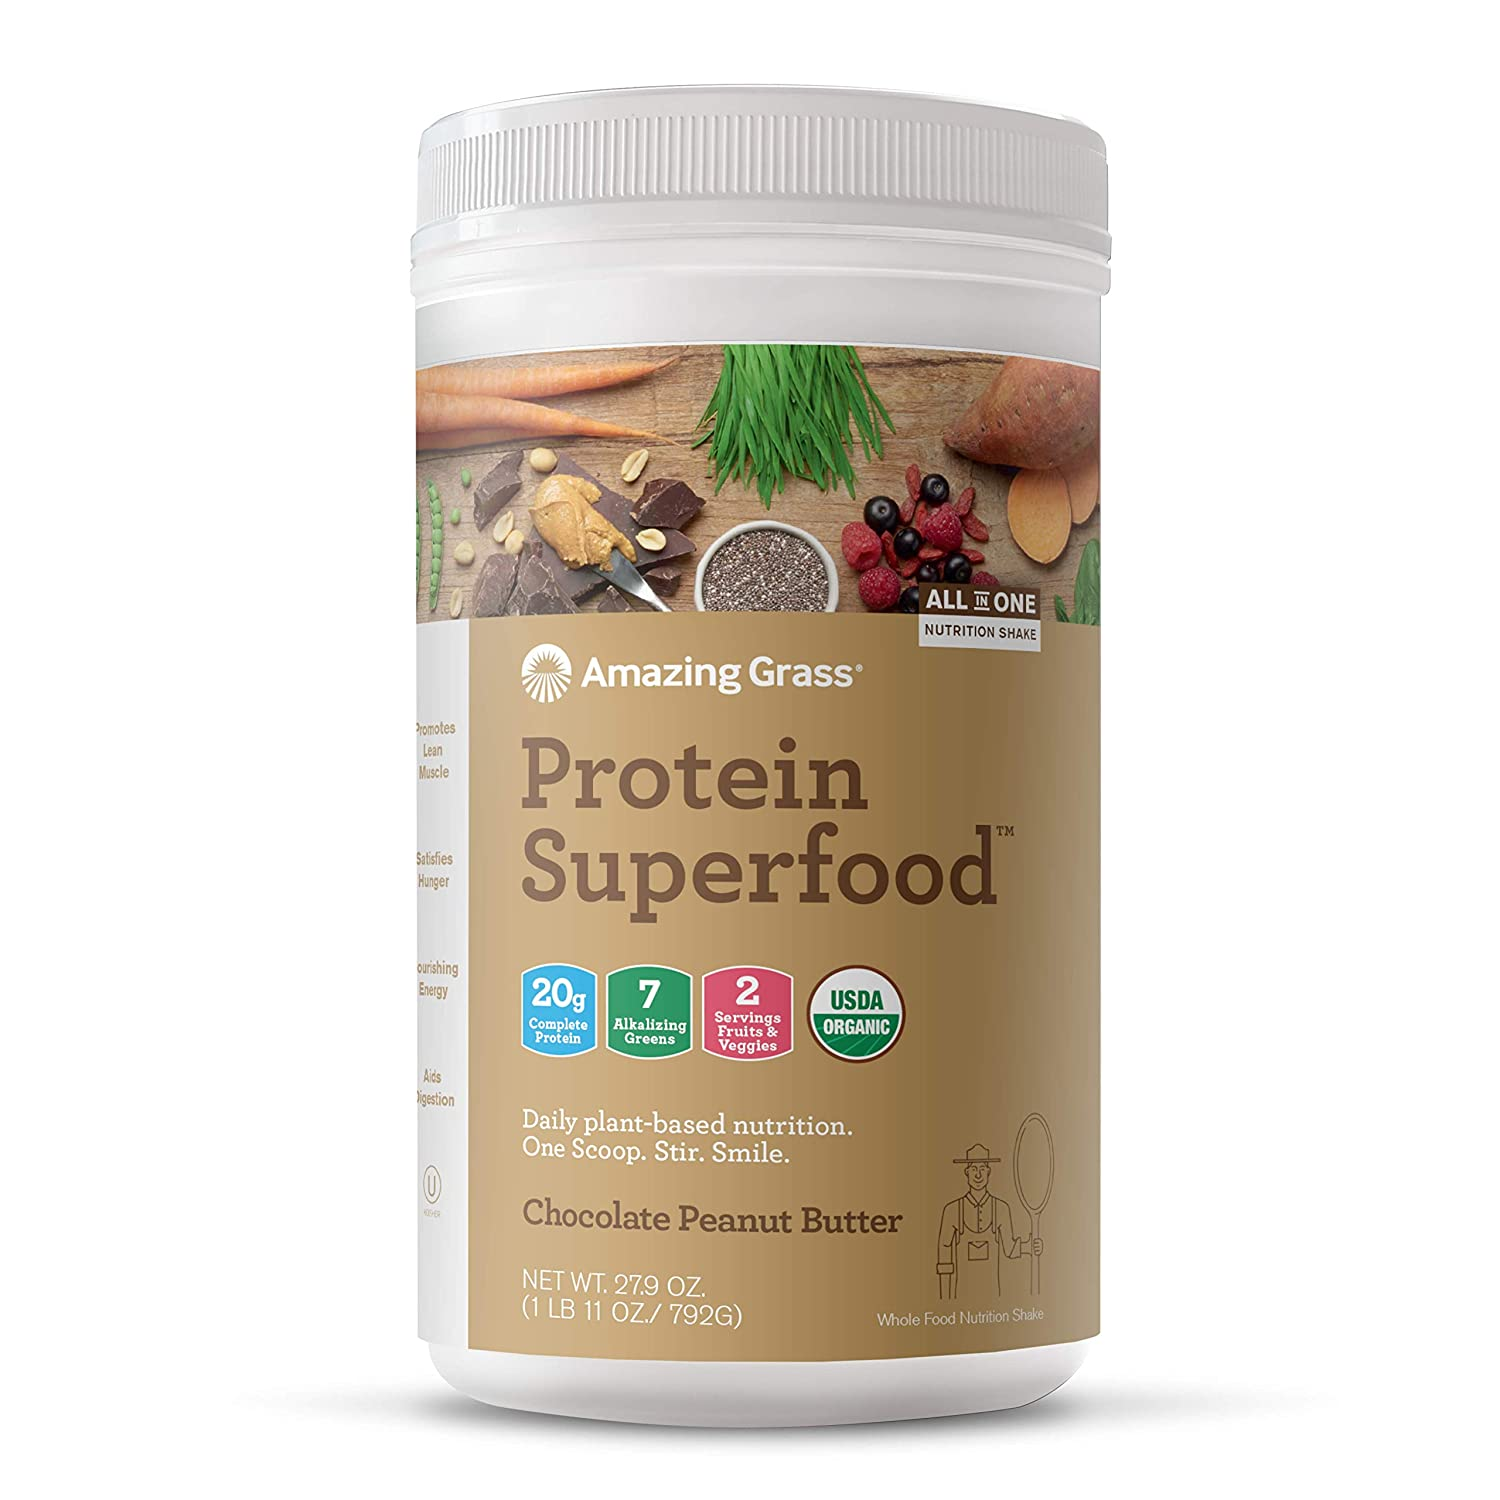 Amazing Grass Protein Superfood: Organic Vegan Protein Powder, Plant Based Meal Replacement Shake with 2 servings of Fruits and Veggies, Chocolate Peanut Butter Flavor, 18 Servings, 27.9 Ounce